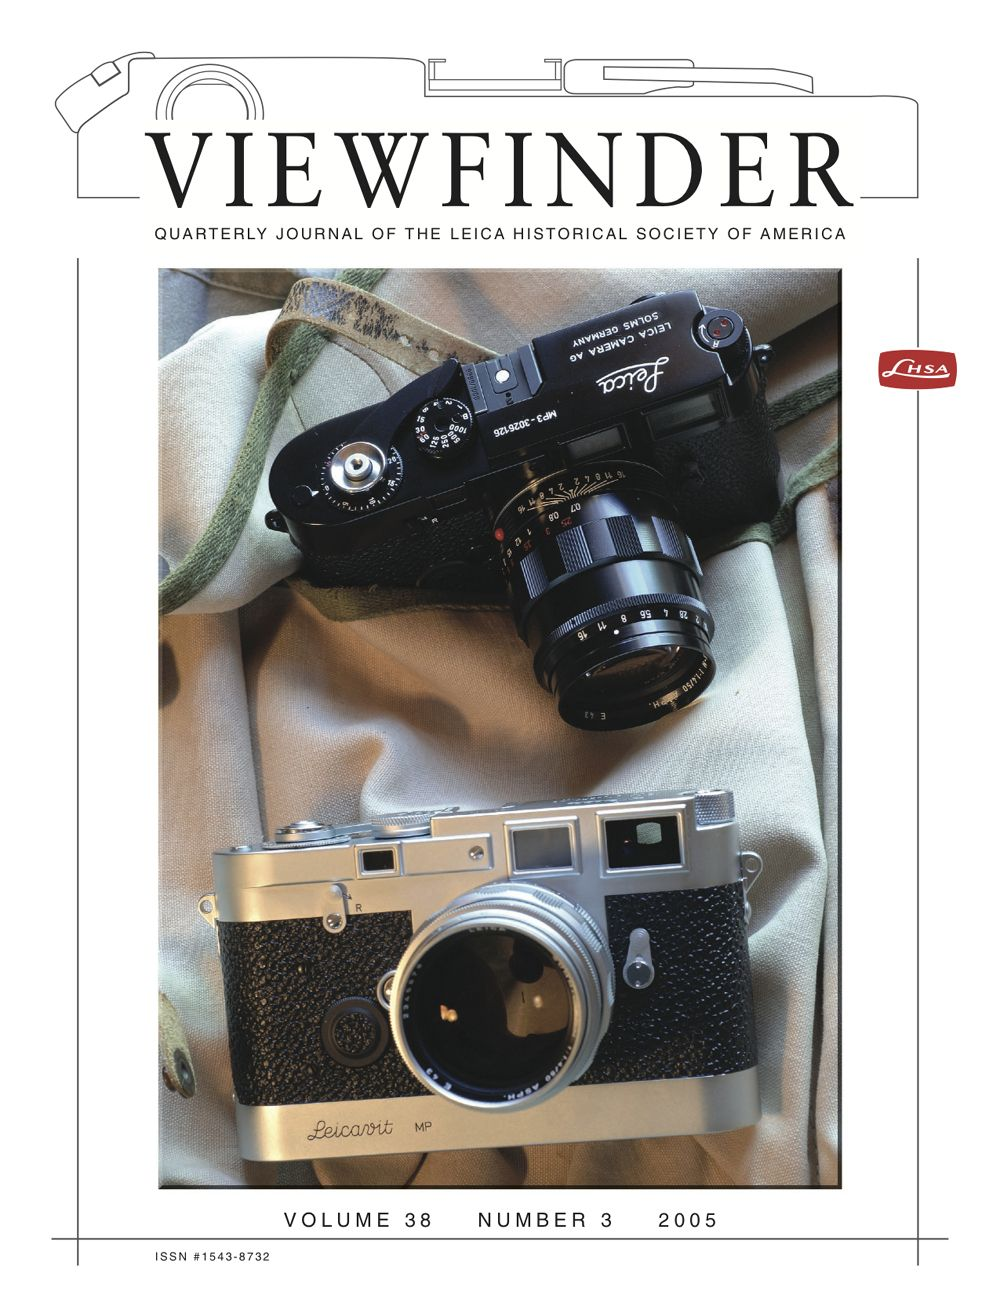 Fall 2005 Viewfinder Cover Announcing The Lhsa Mp3 Set